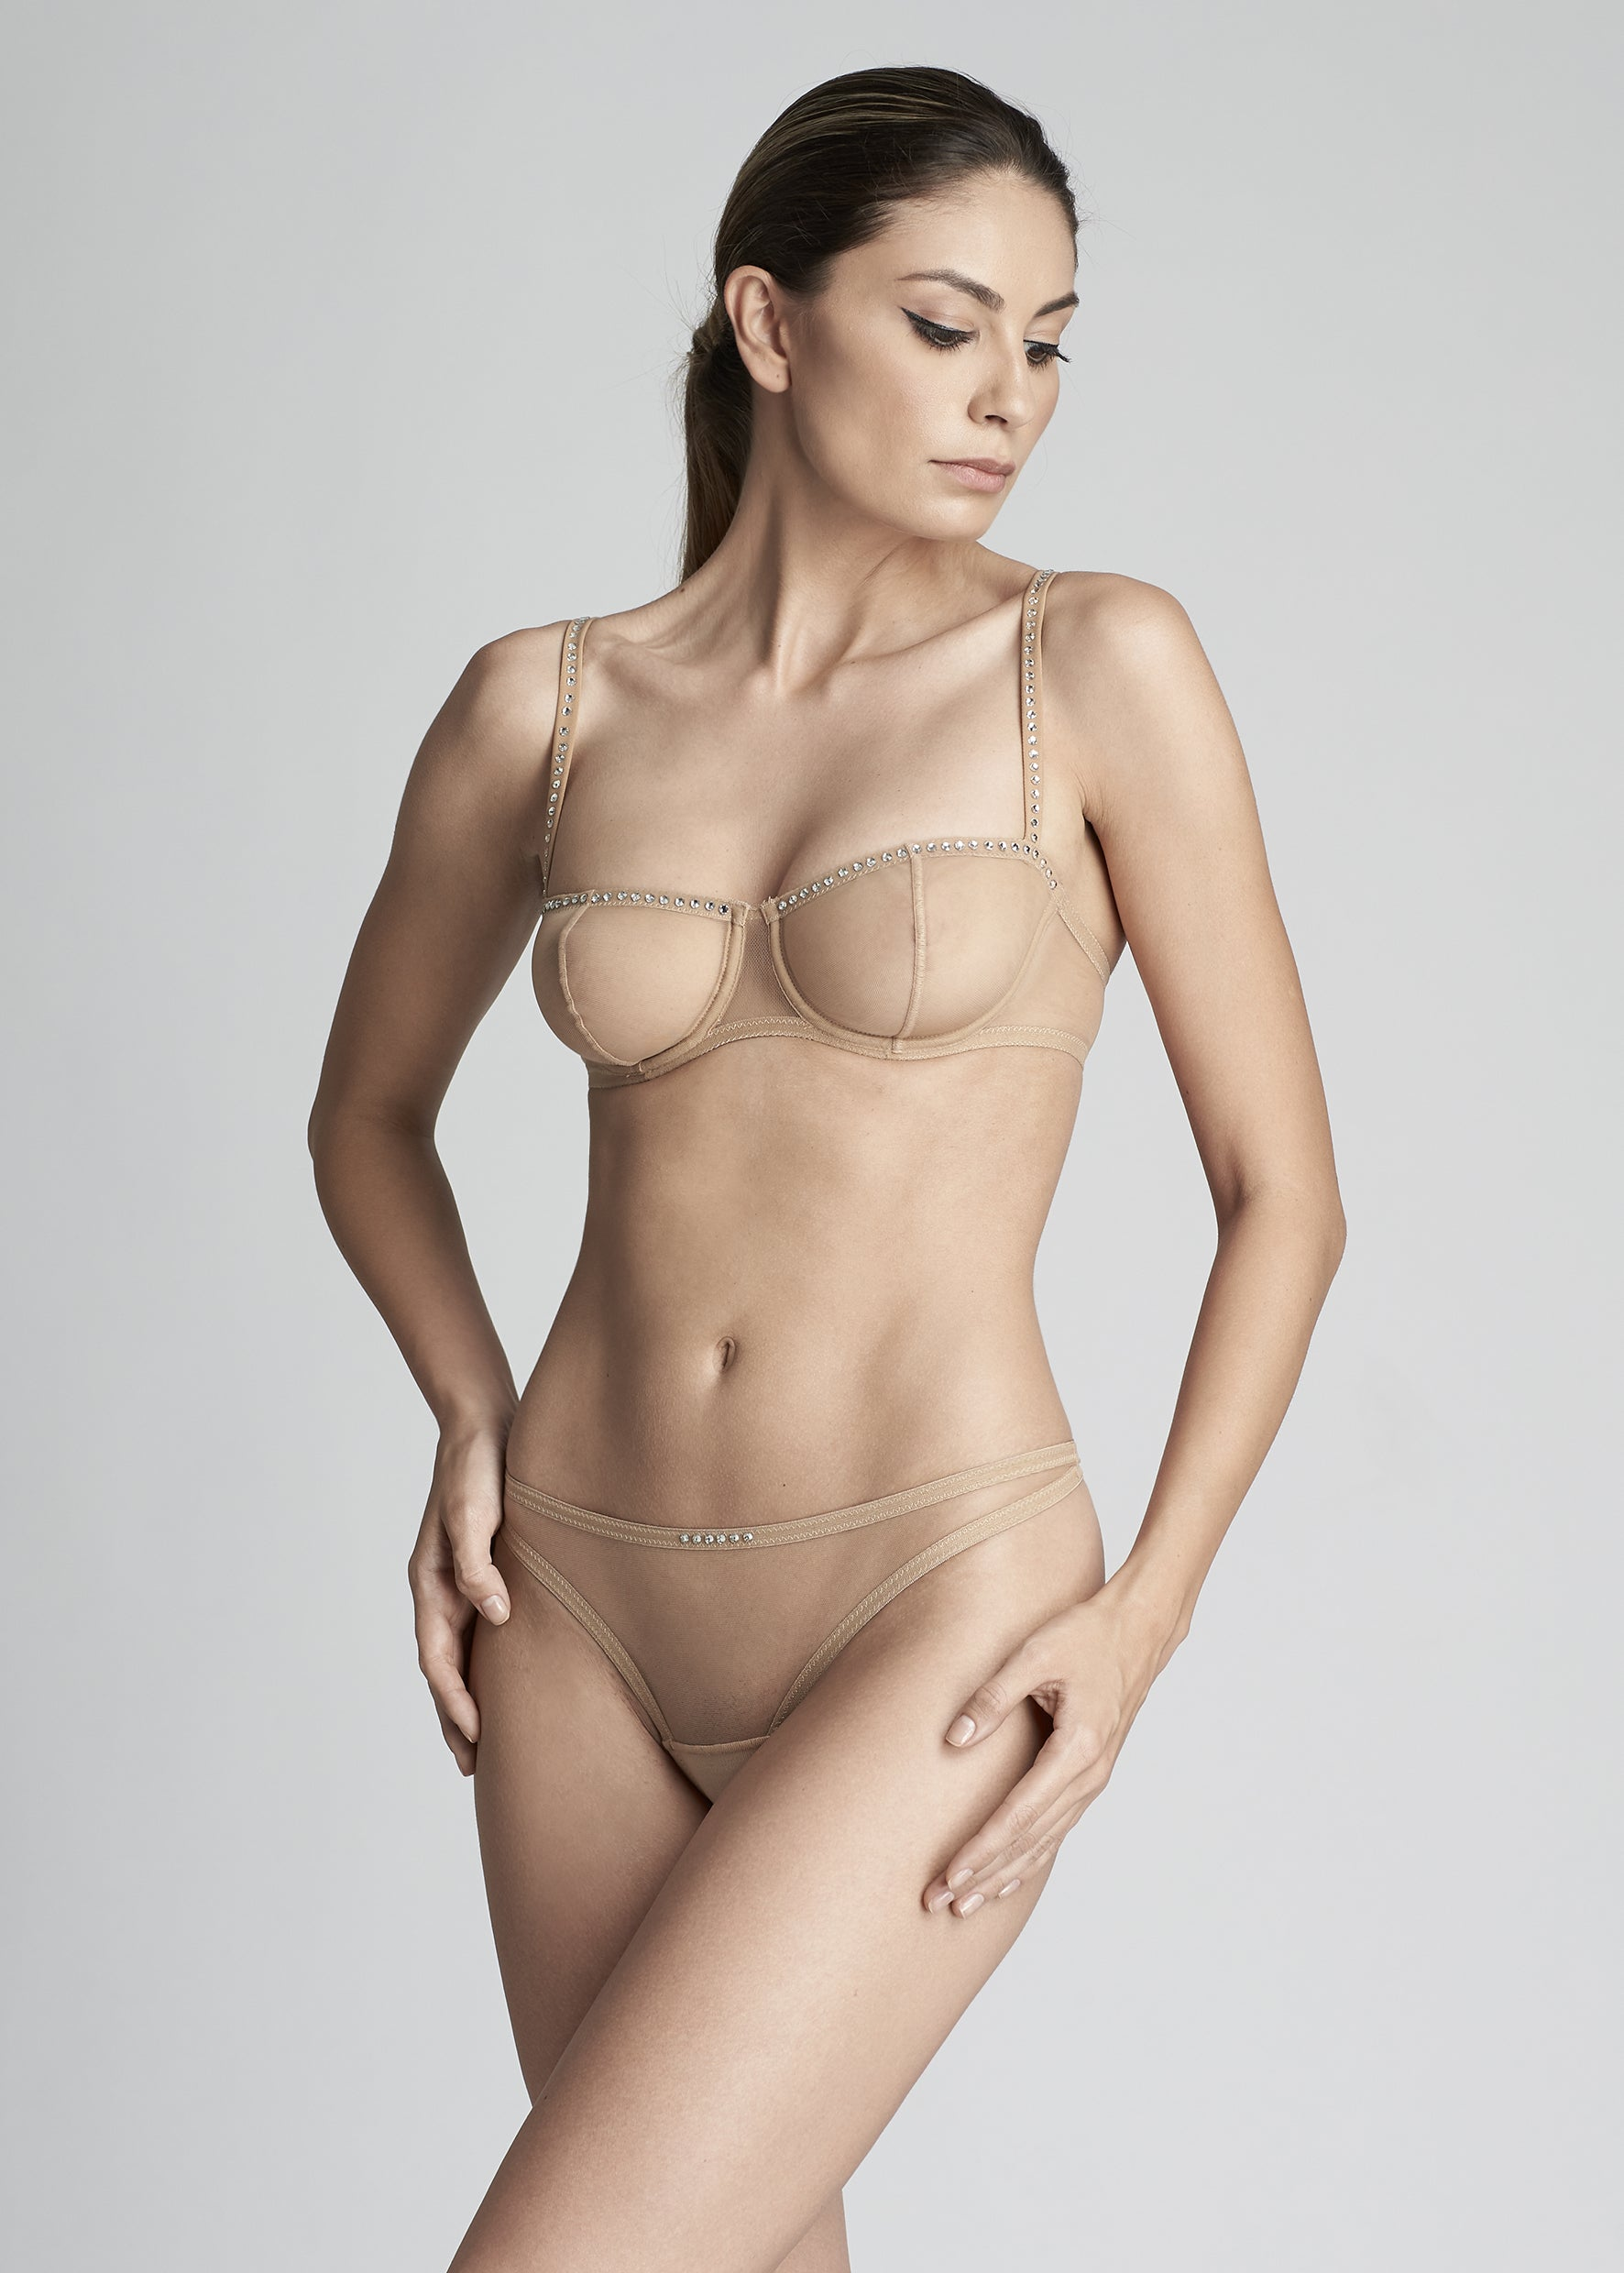 Nuit Interdit Thong with Swarovski Crystals in Nude